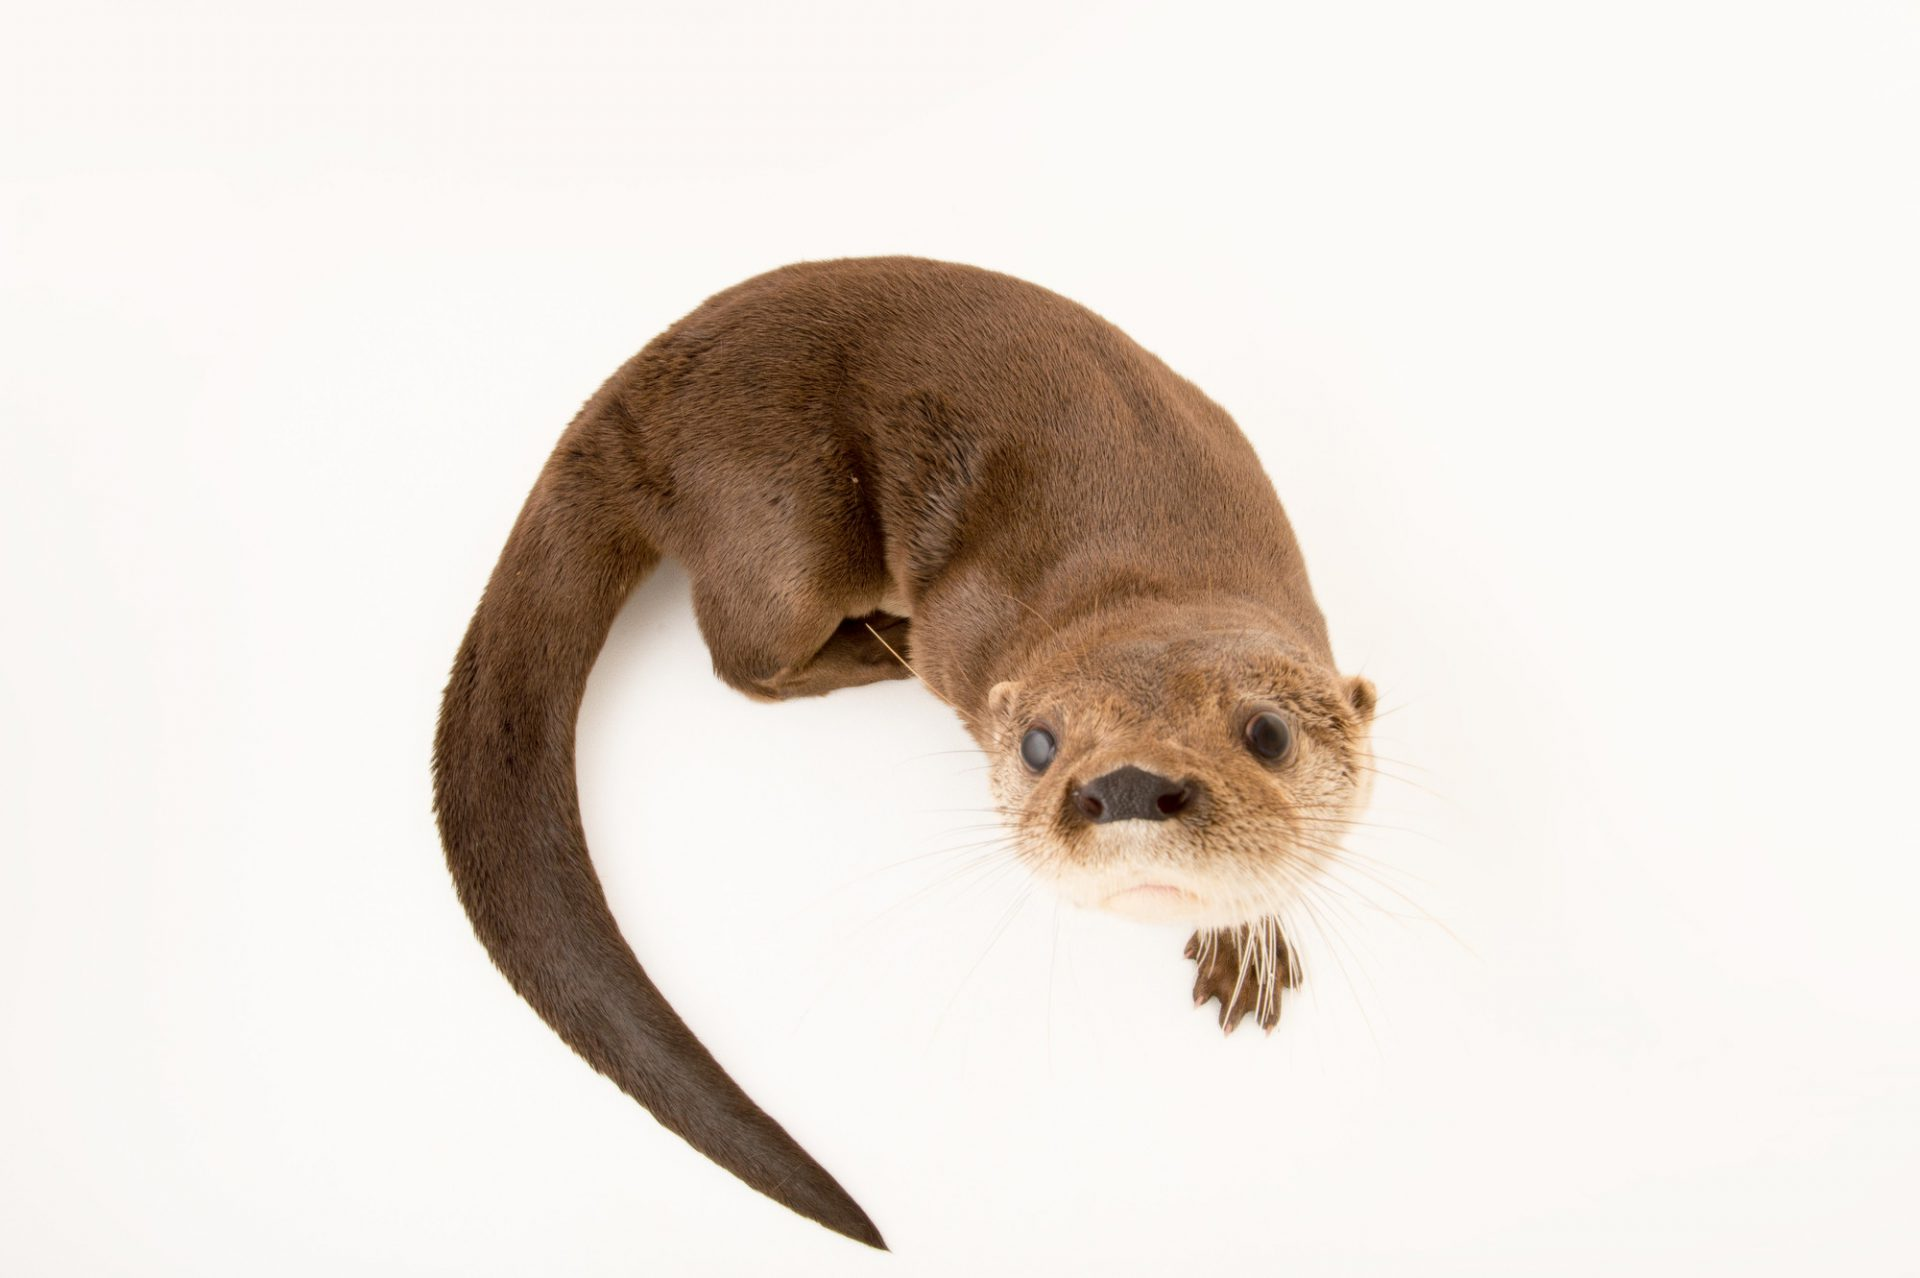 Picture of a federally endangered, female Neotropical river otter (Lontra longicaudis) at the Summit Municipal Park in Gamboa, Panama.